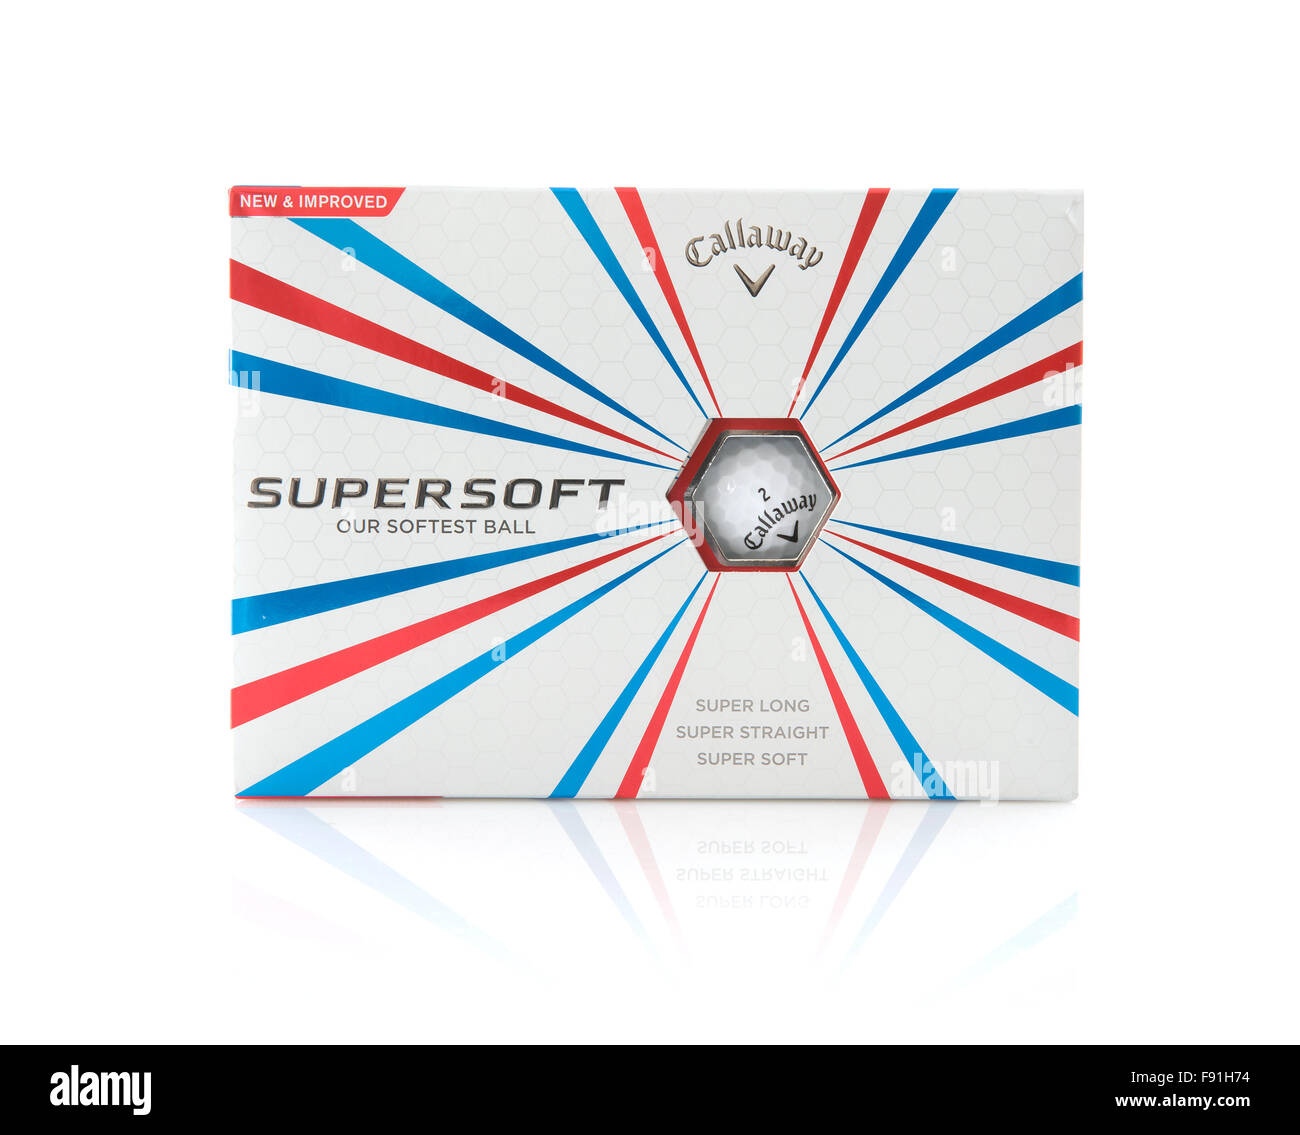 Box of Callaway Supersoft Golf Balls on a white background - Stock Image